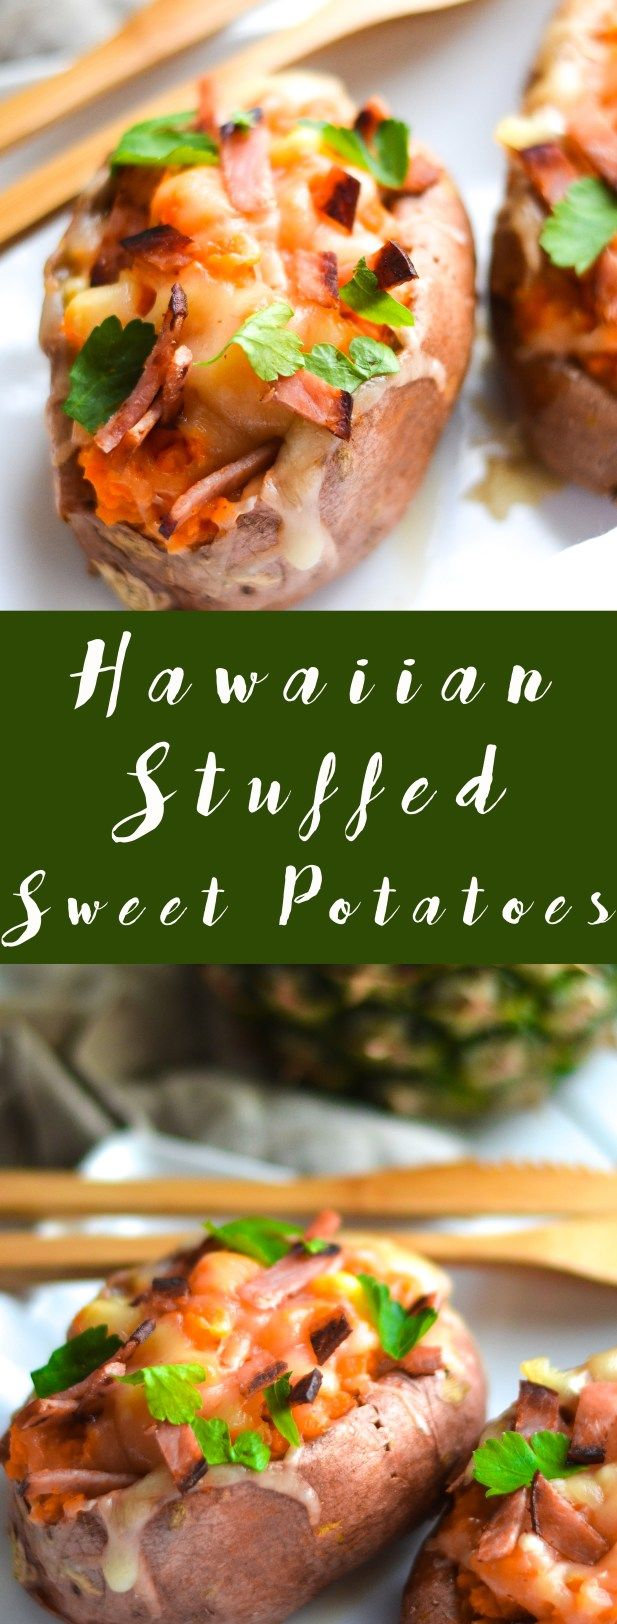 best 25 hawaiian side dishes ideas on pinterest hawaiian fruit